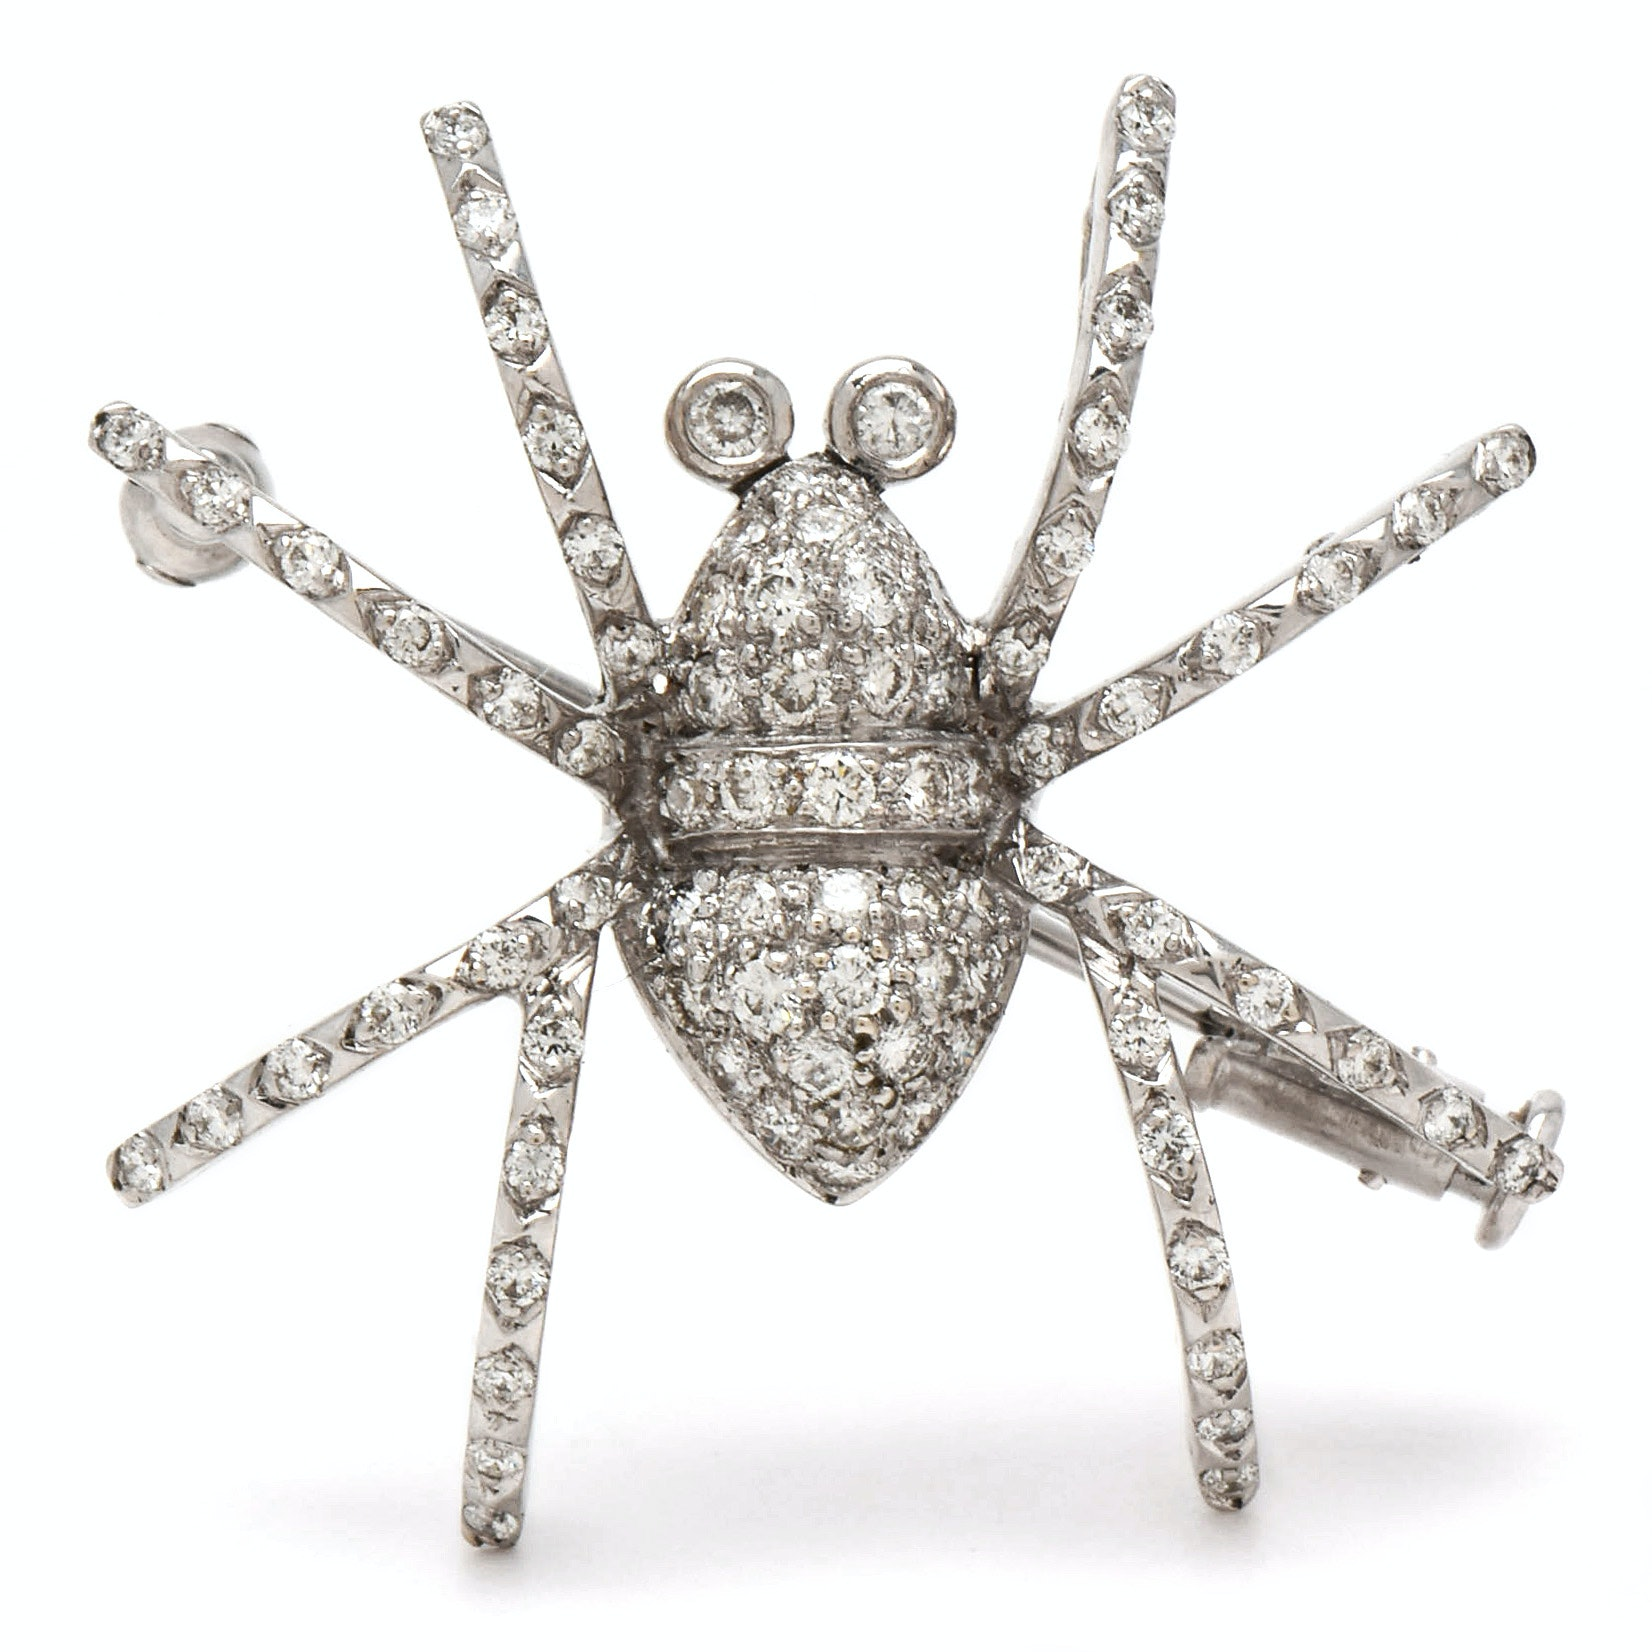 18K White Gold Diamond Spider Brooch with 14K White Gold Stem Pin